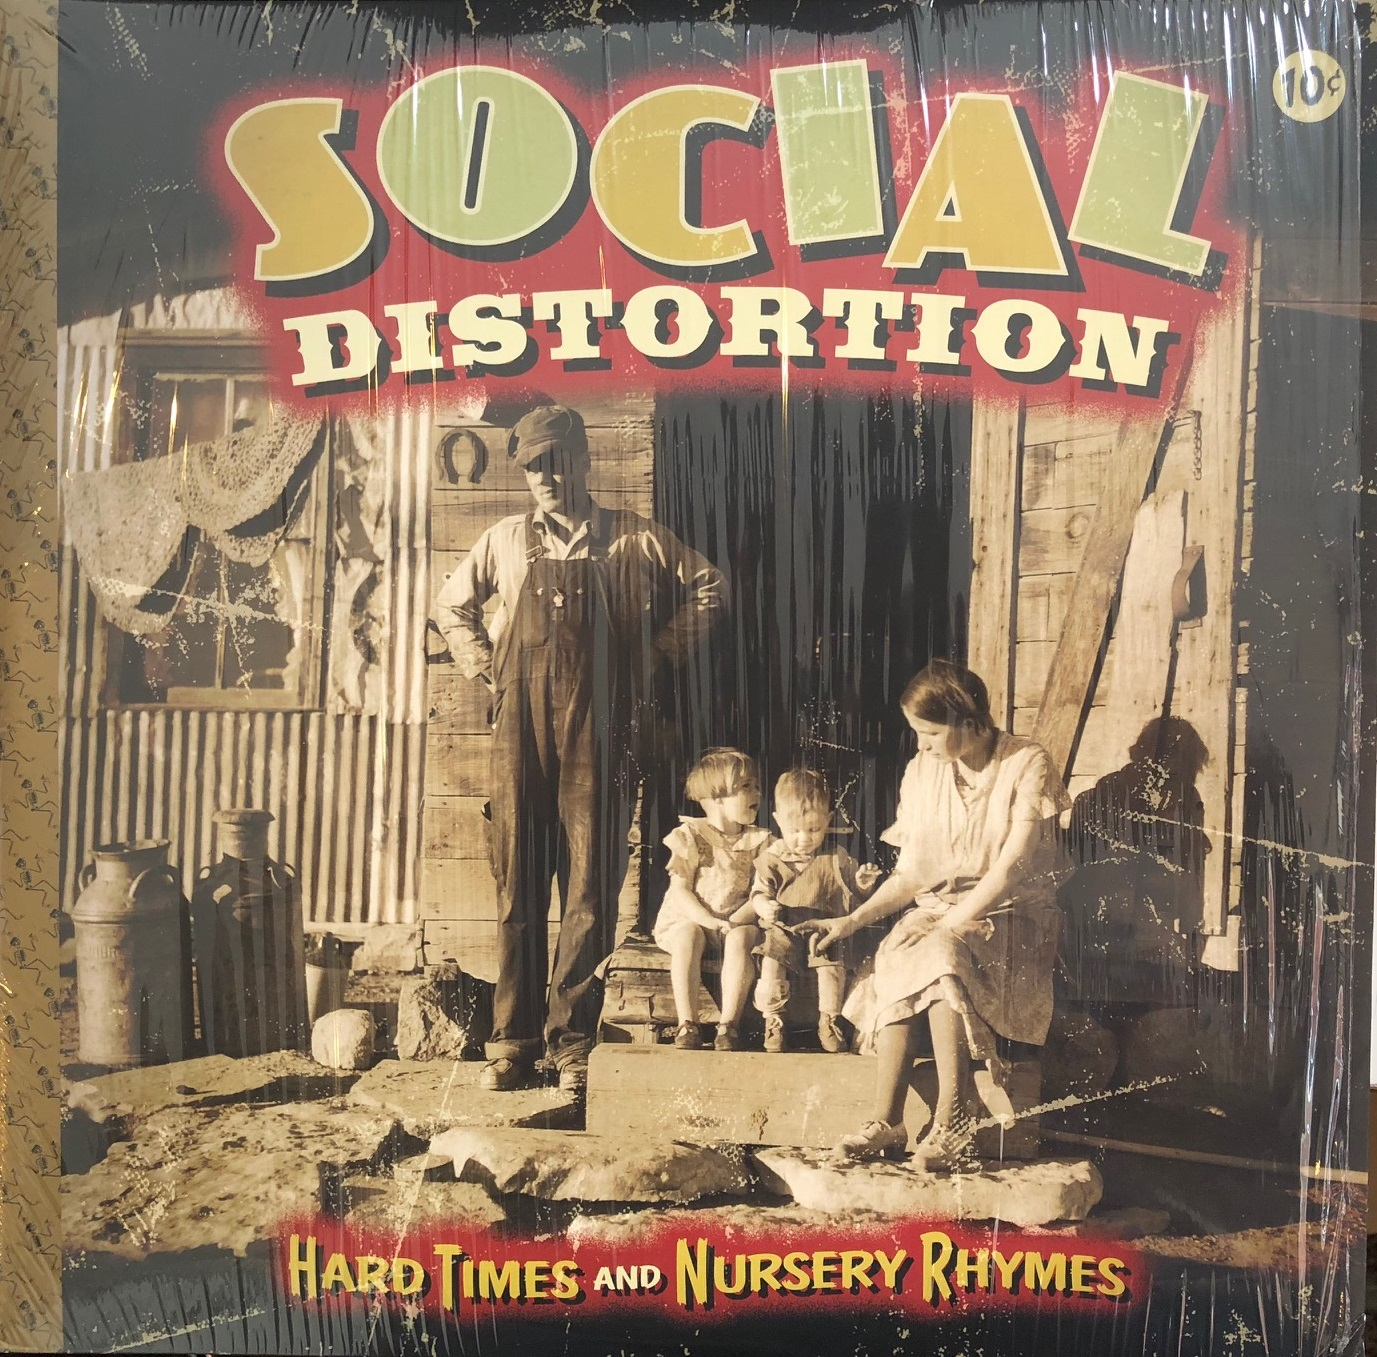 SOCIAL DISTORTION / HARD TIMES AND NURSERY RHYMES